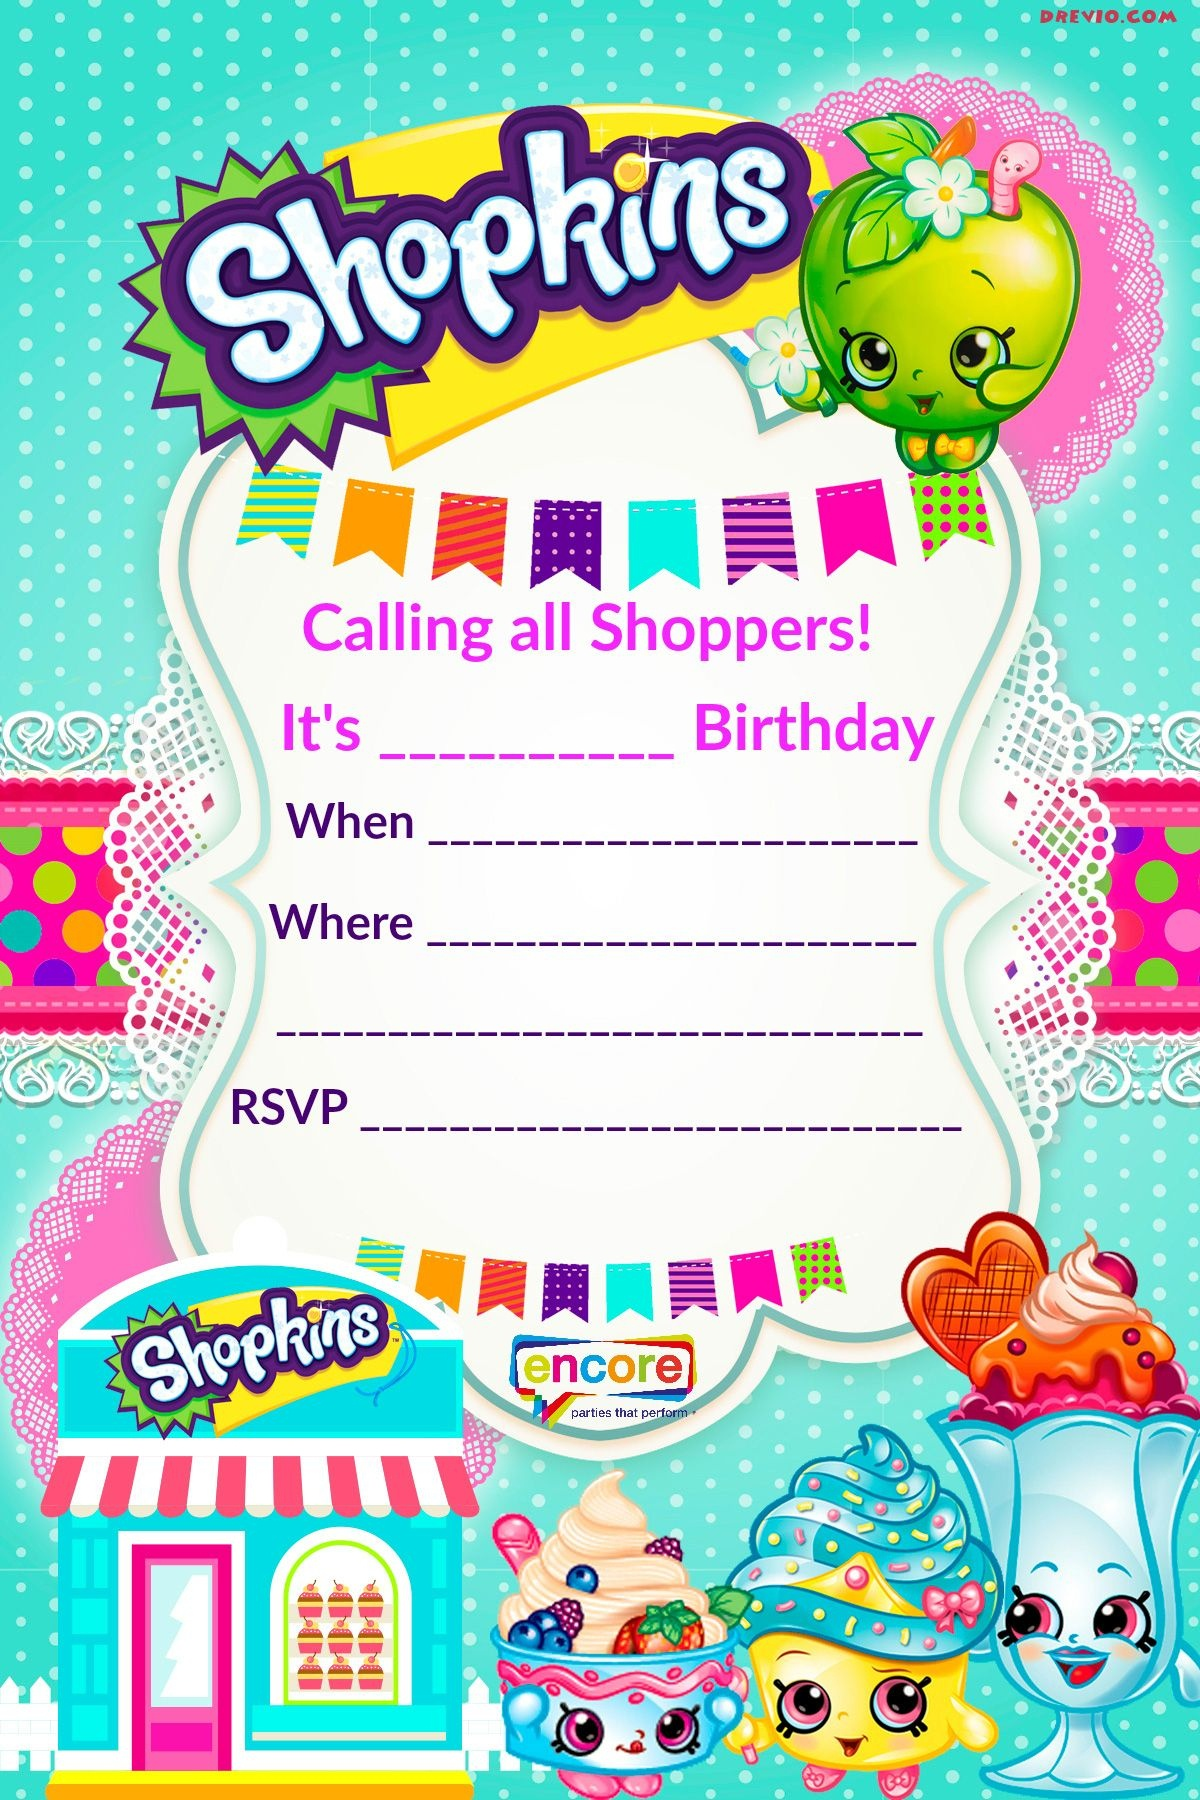 Updated - Free Printable Shopkins Birthday Invitation Template - Free Printable Birthday Invitation Templates